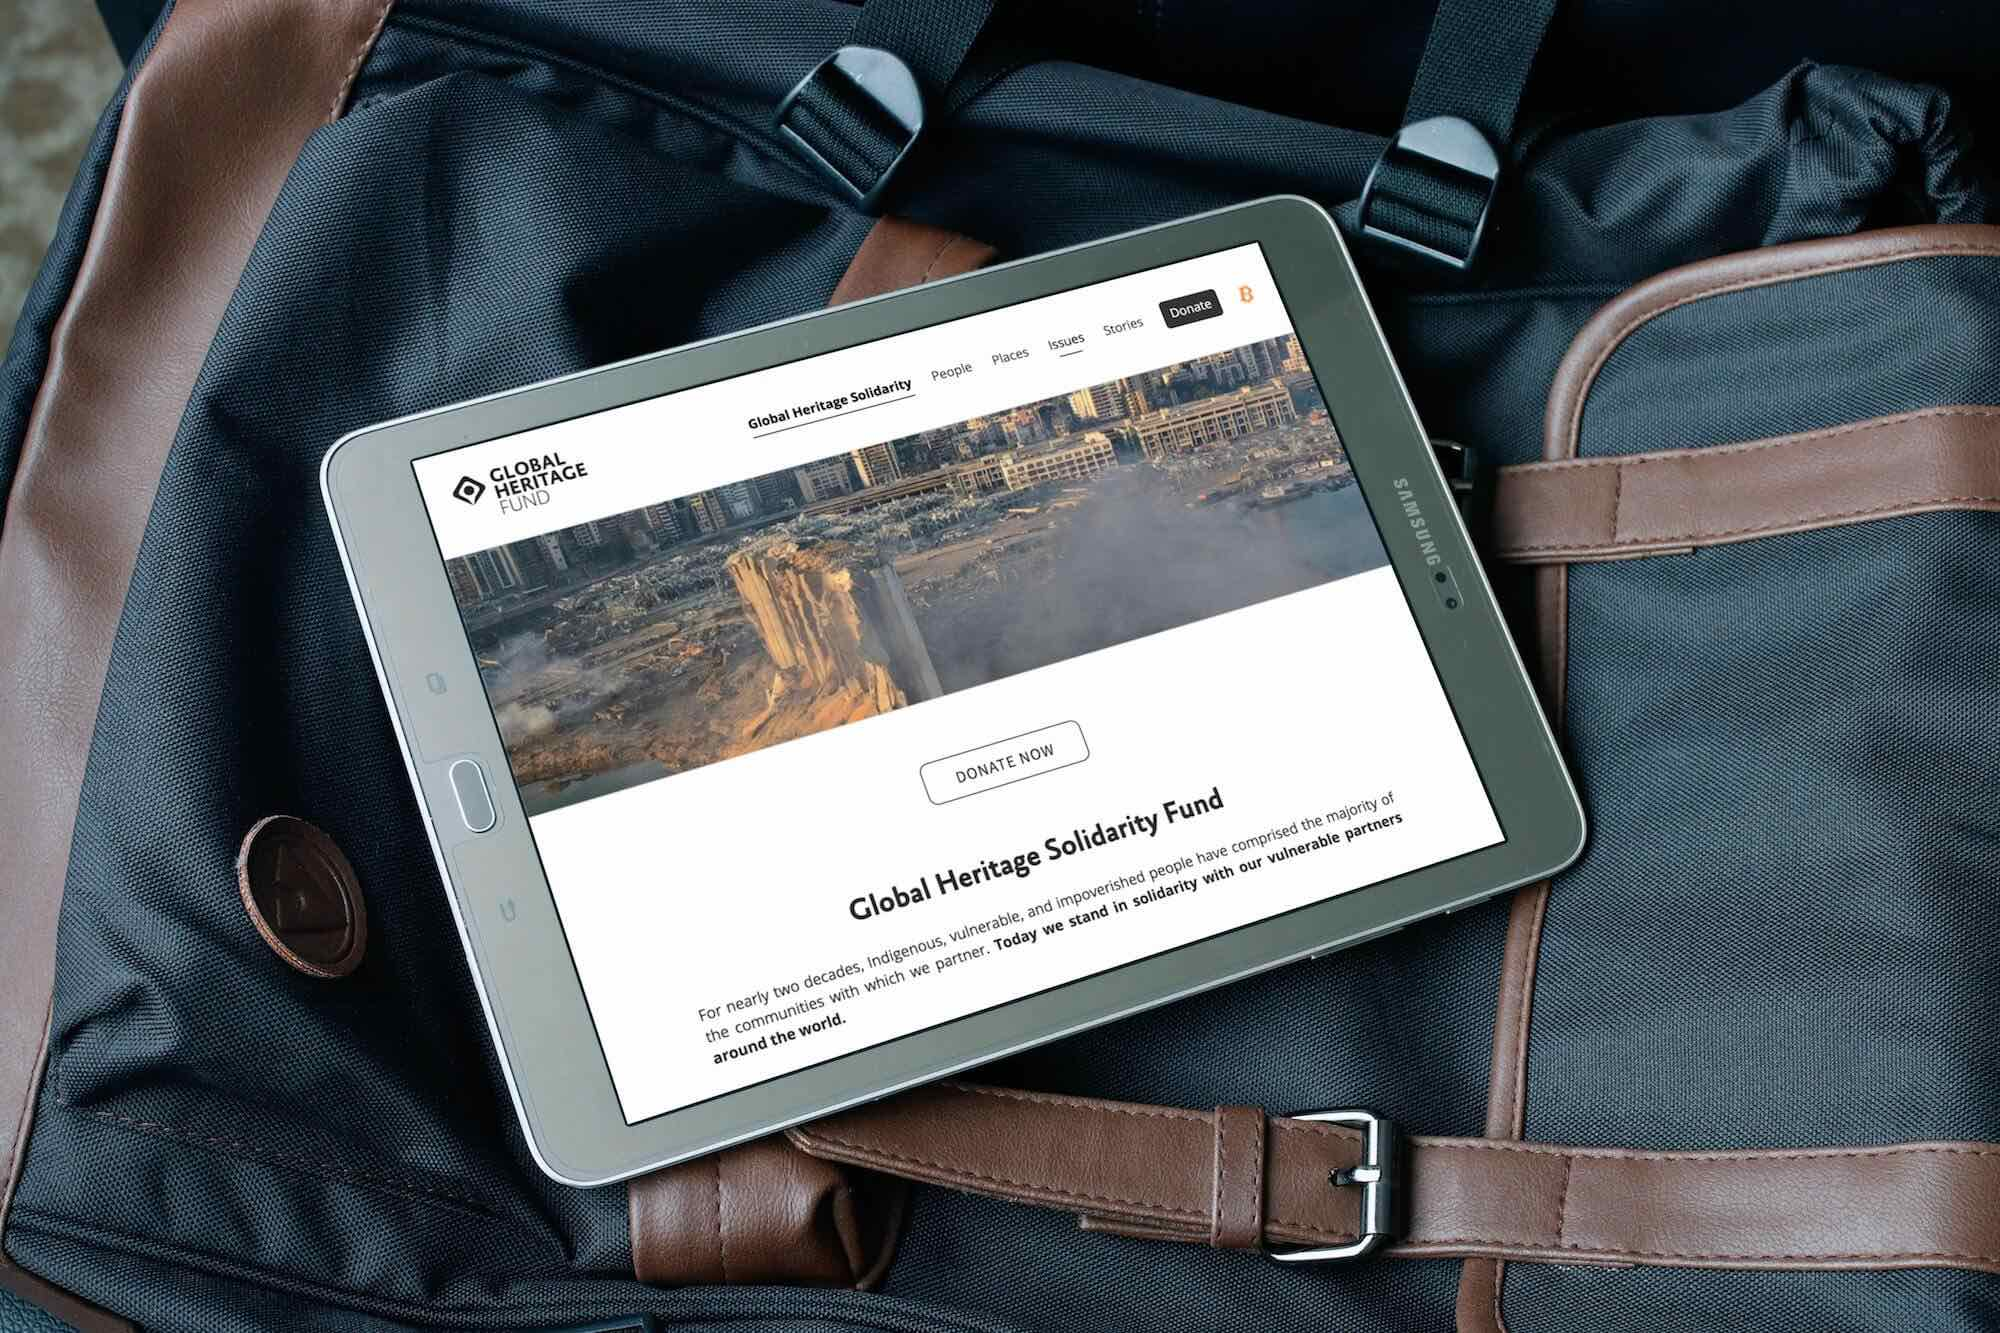 Tablet showing webpage from Global Heritage Fund website.